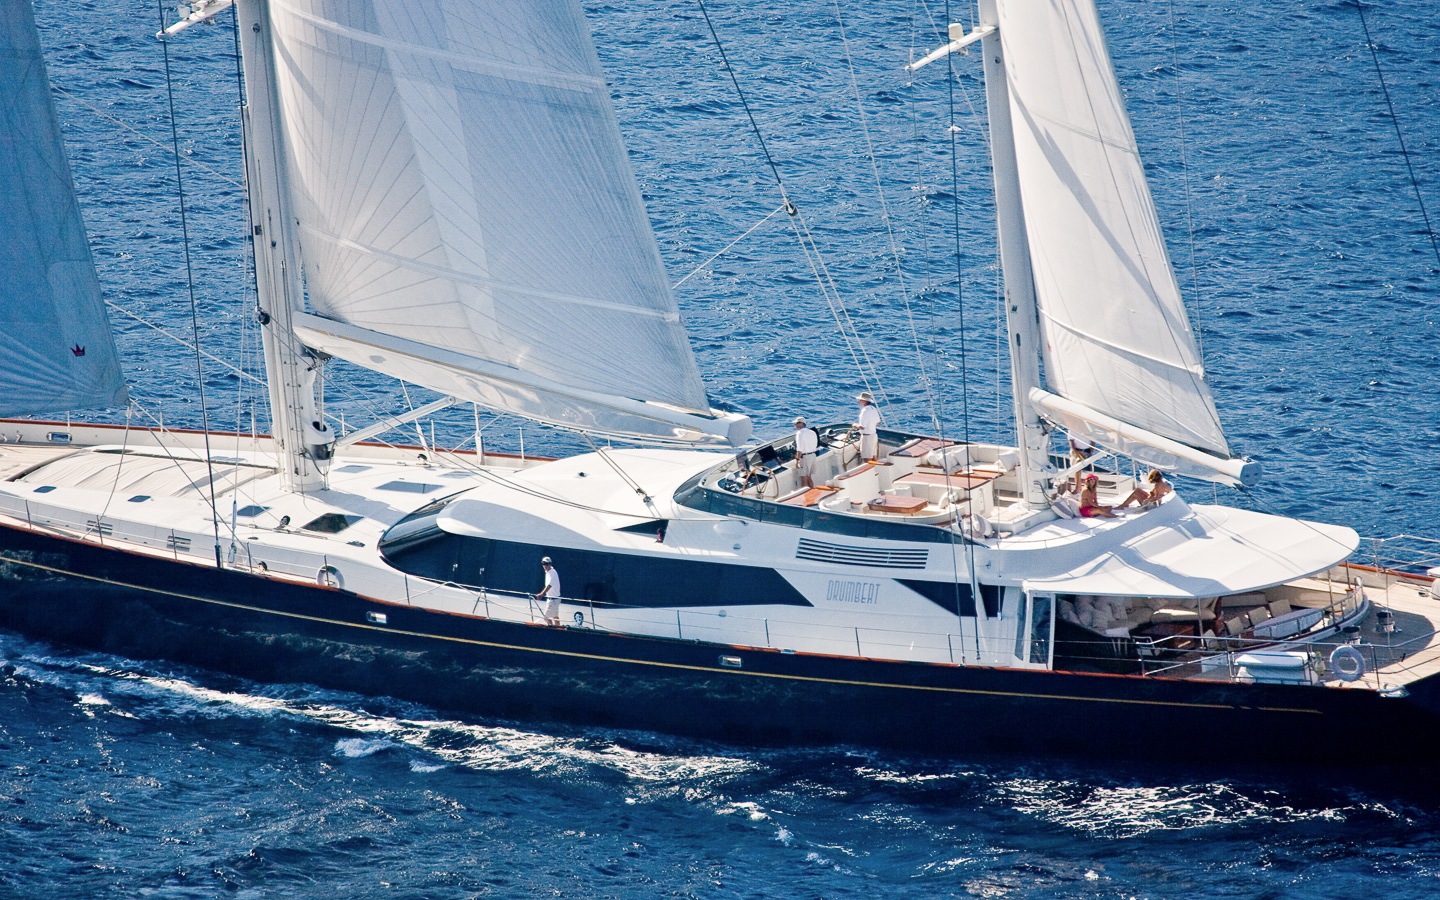 DRUMBEAT - Sailing yacht - Flying Charter